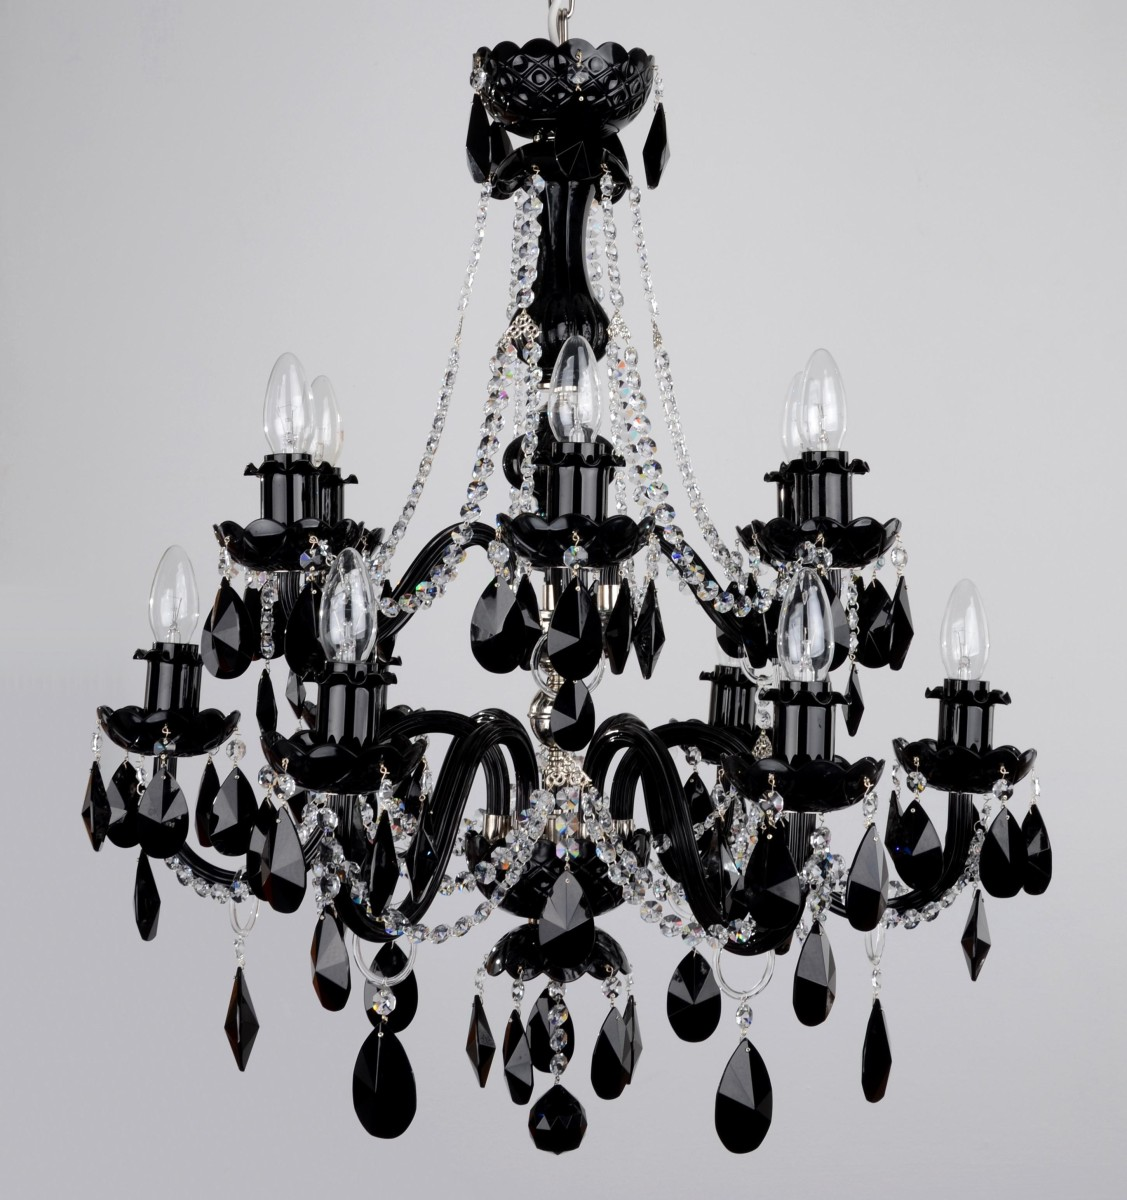 12 Arms Black White Crystal Chandelier Almonds Clear Str Chains